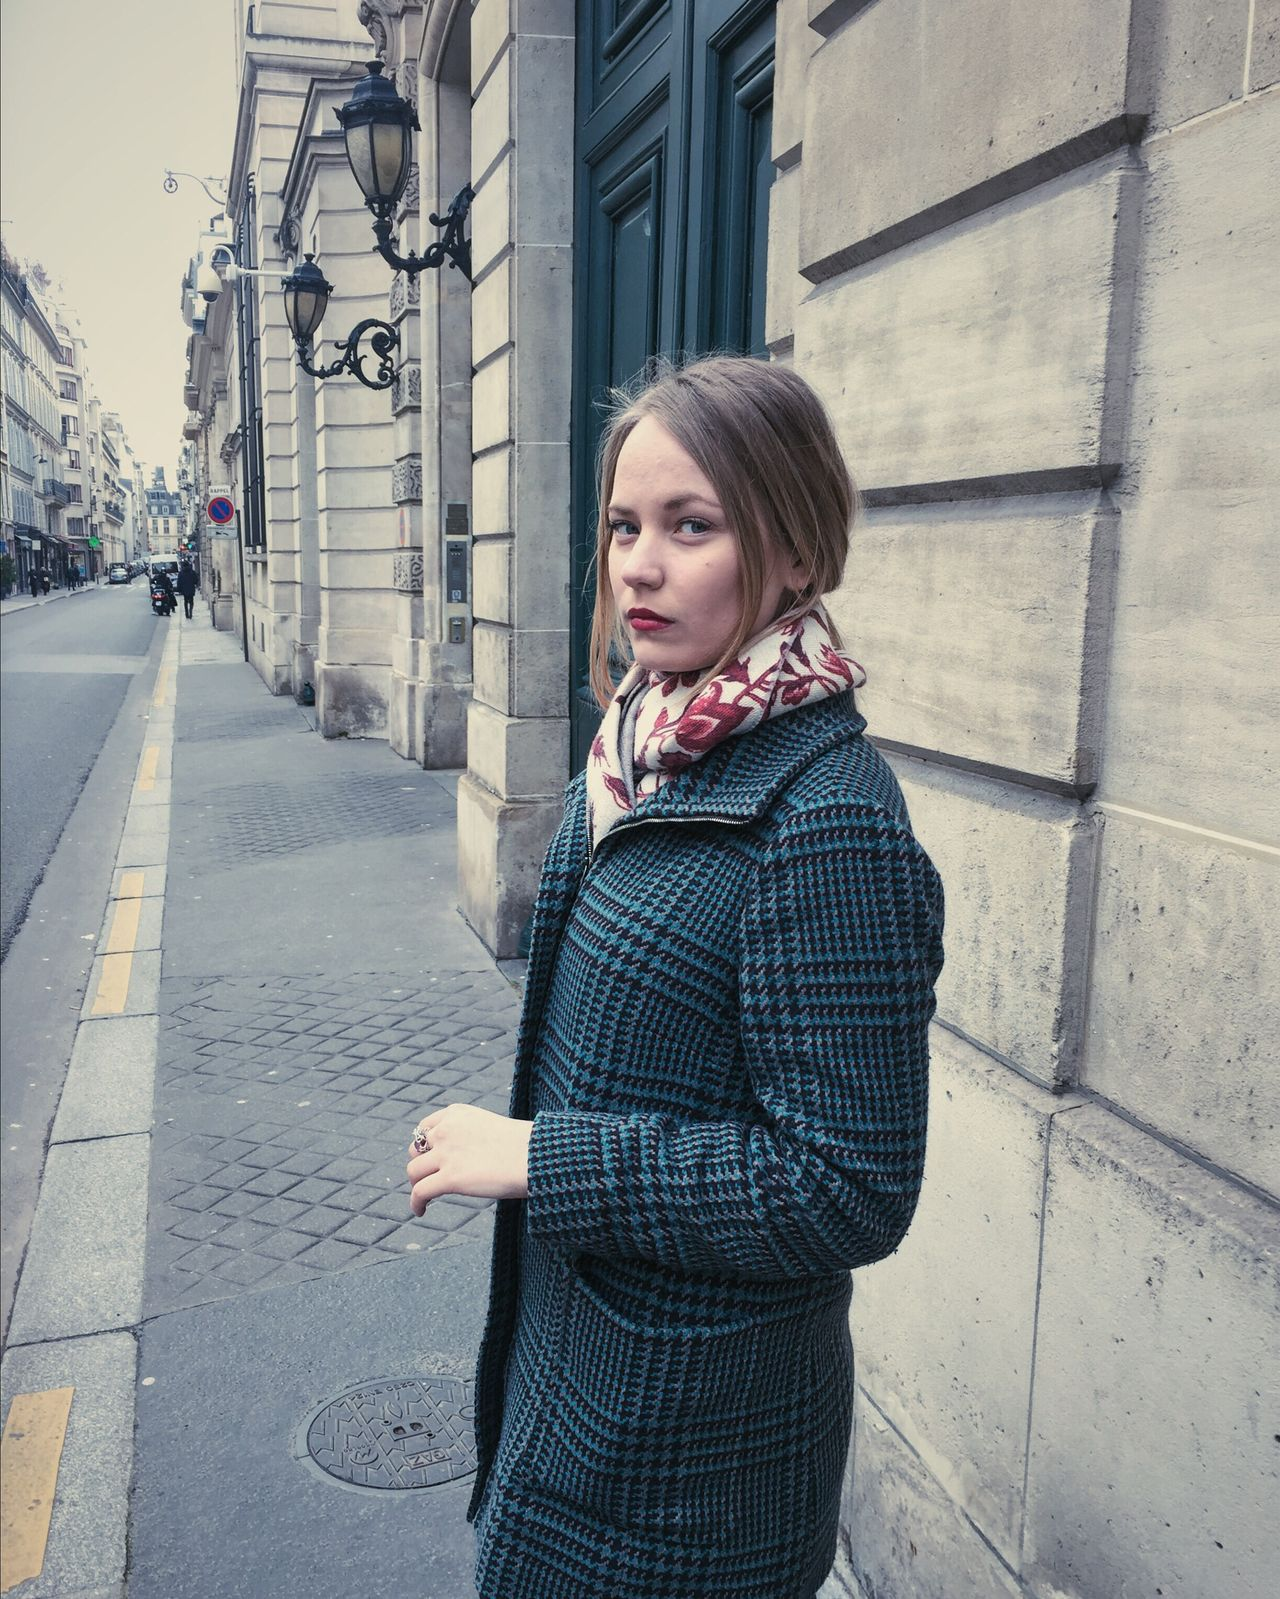 Beautiful stock photos of traurig, only women, city, one woman only, women